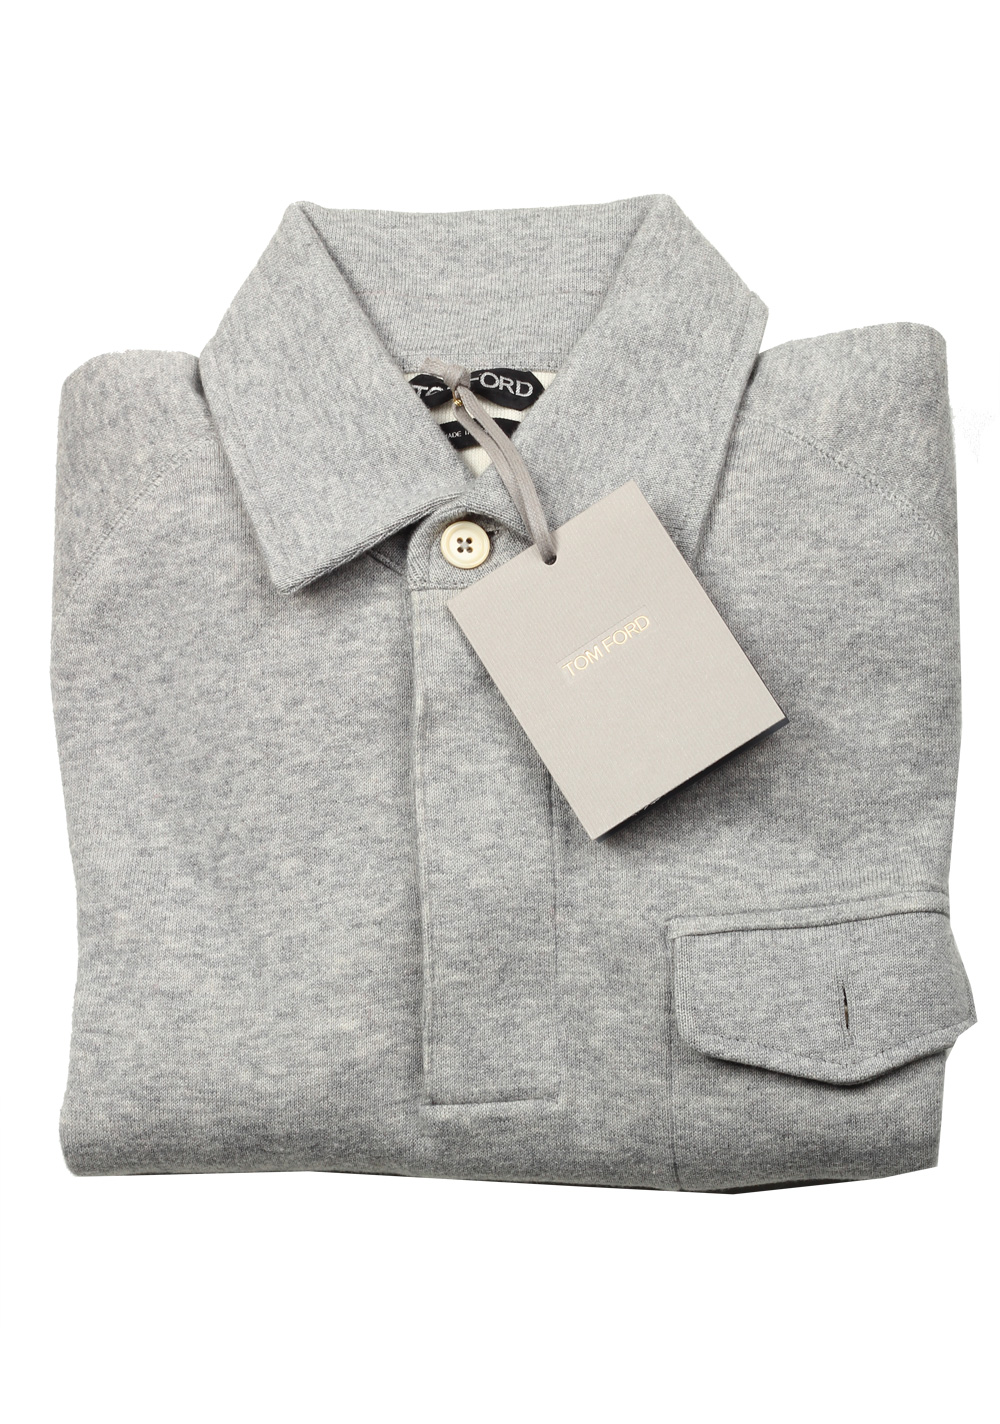 TOM FORD Gray Long Sleeve Jersey Polo Sweater Size 48 / 38R U.S. | Costume Limité